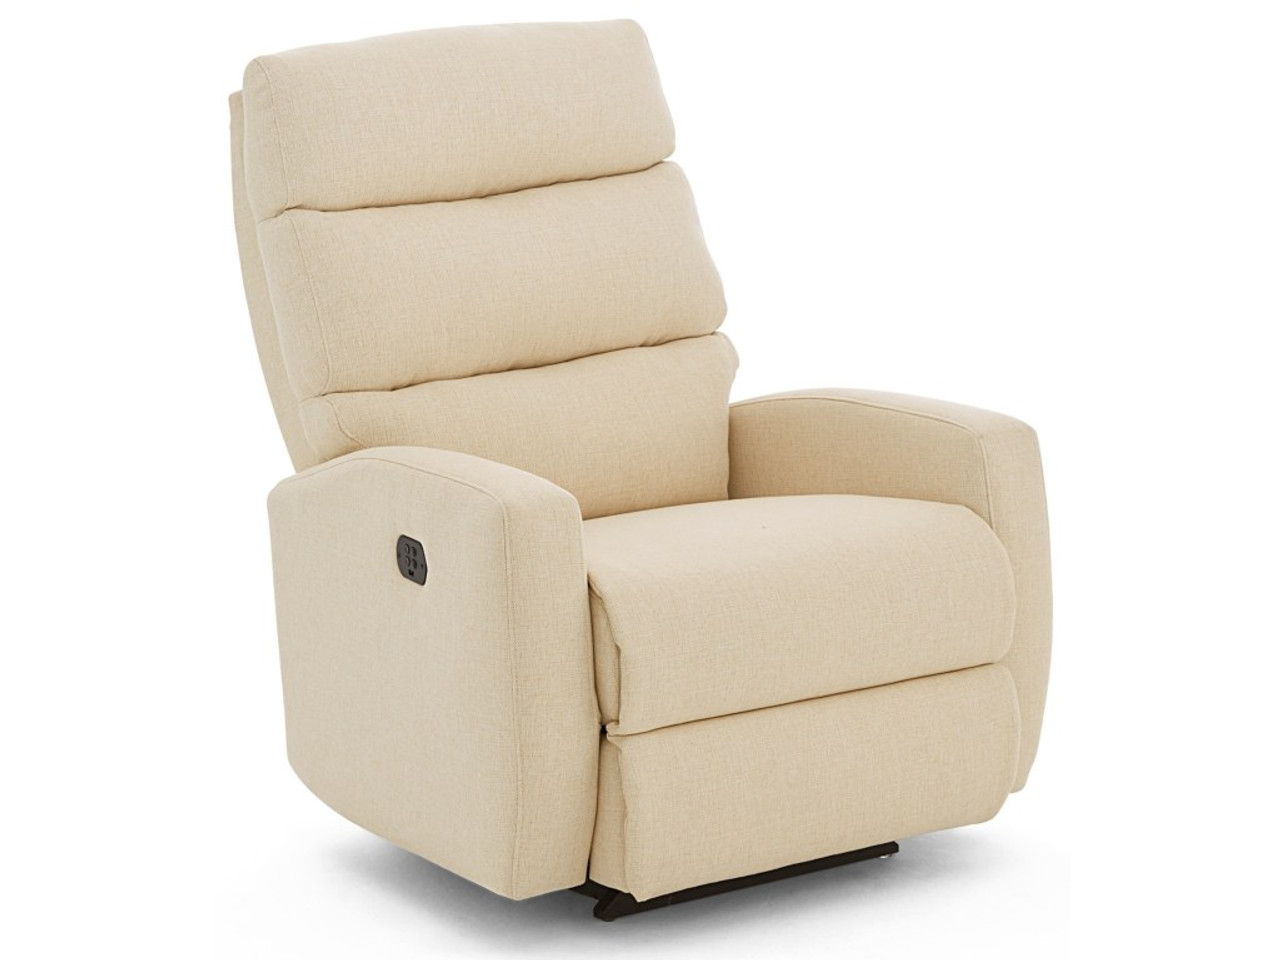 Astounding The Hillarie Petite Wall Saver Recliner Available At Beatyapartments Chair Design Images Beatyapartmentscom